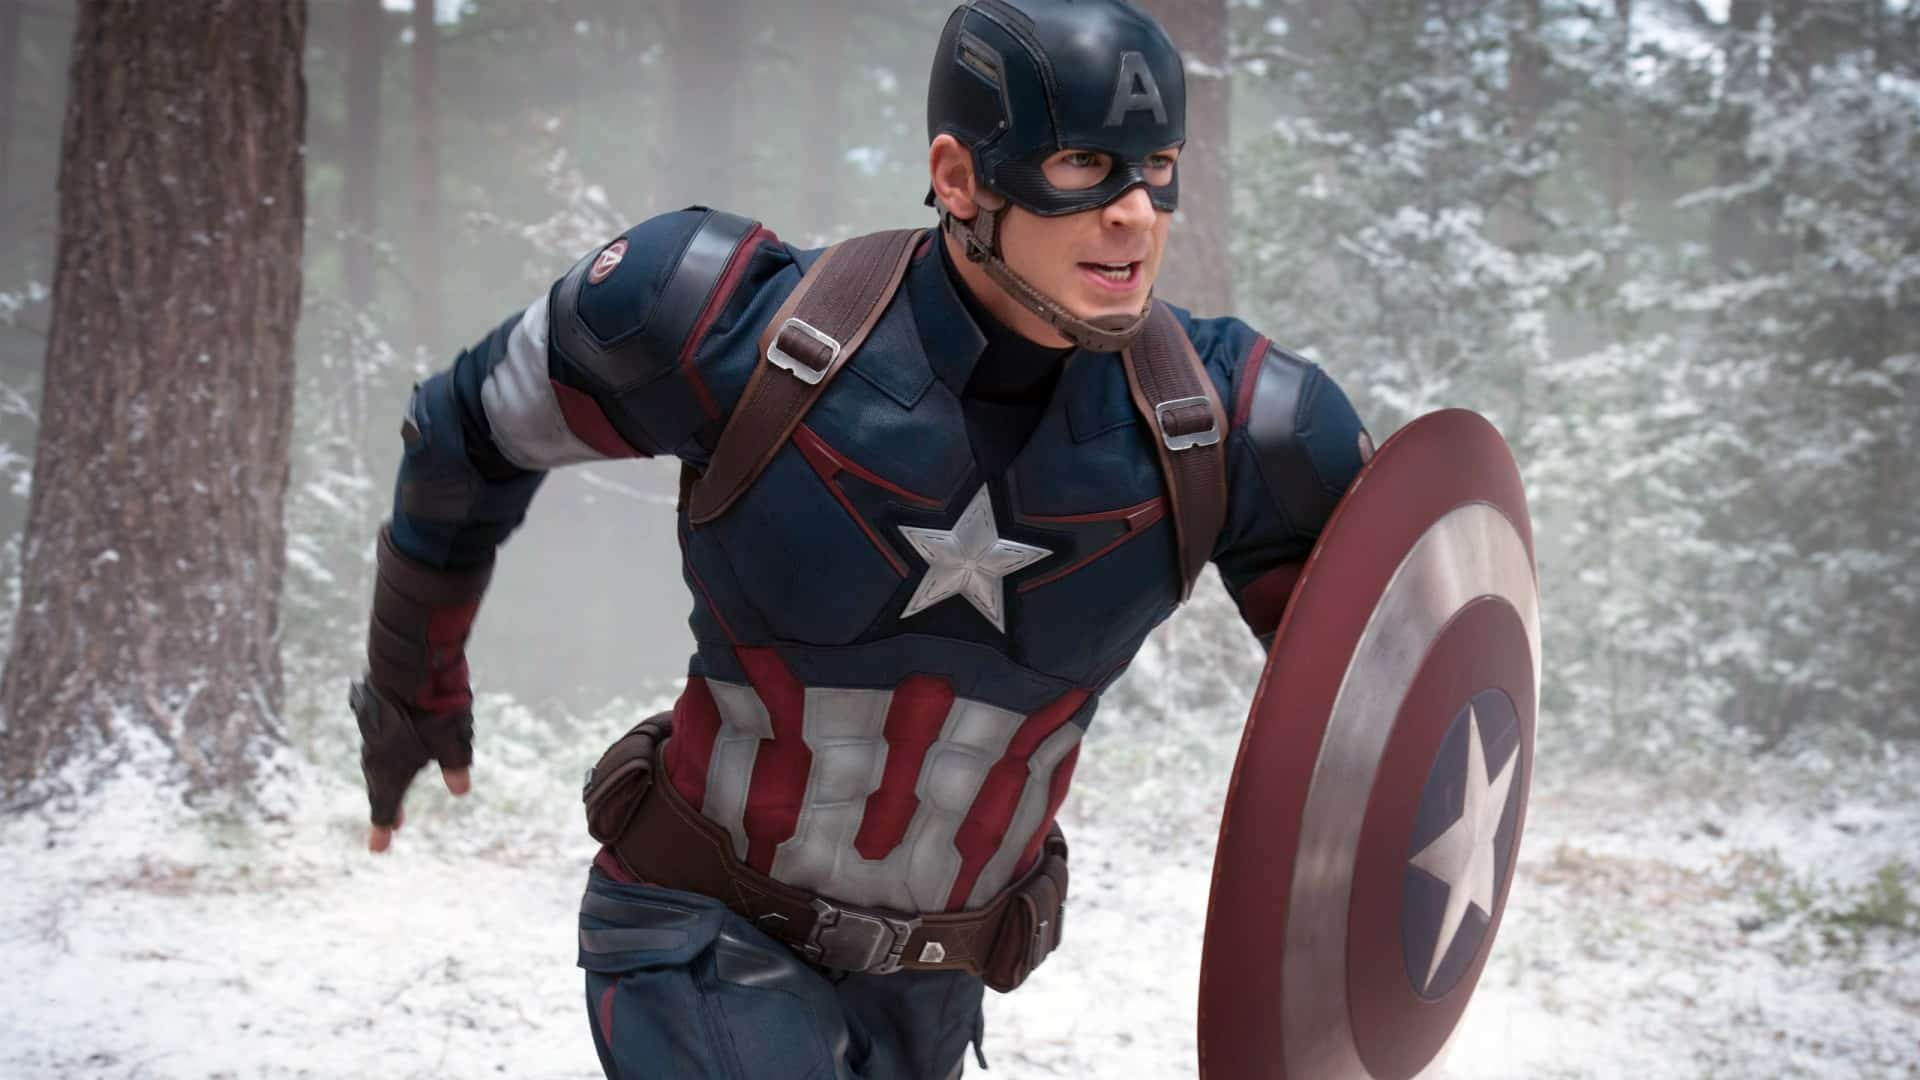 captain america; Zdroj: hdwallpapers.in